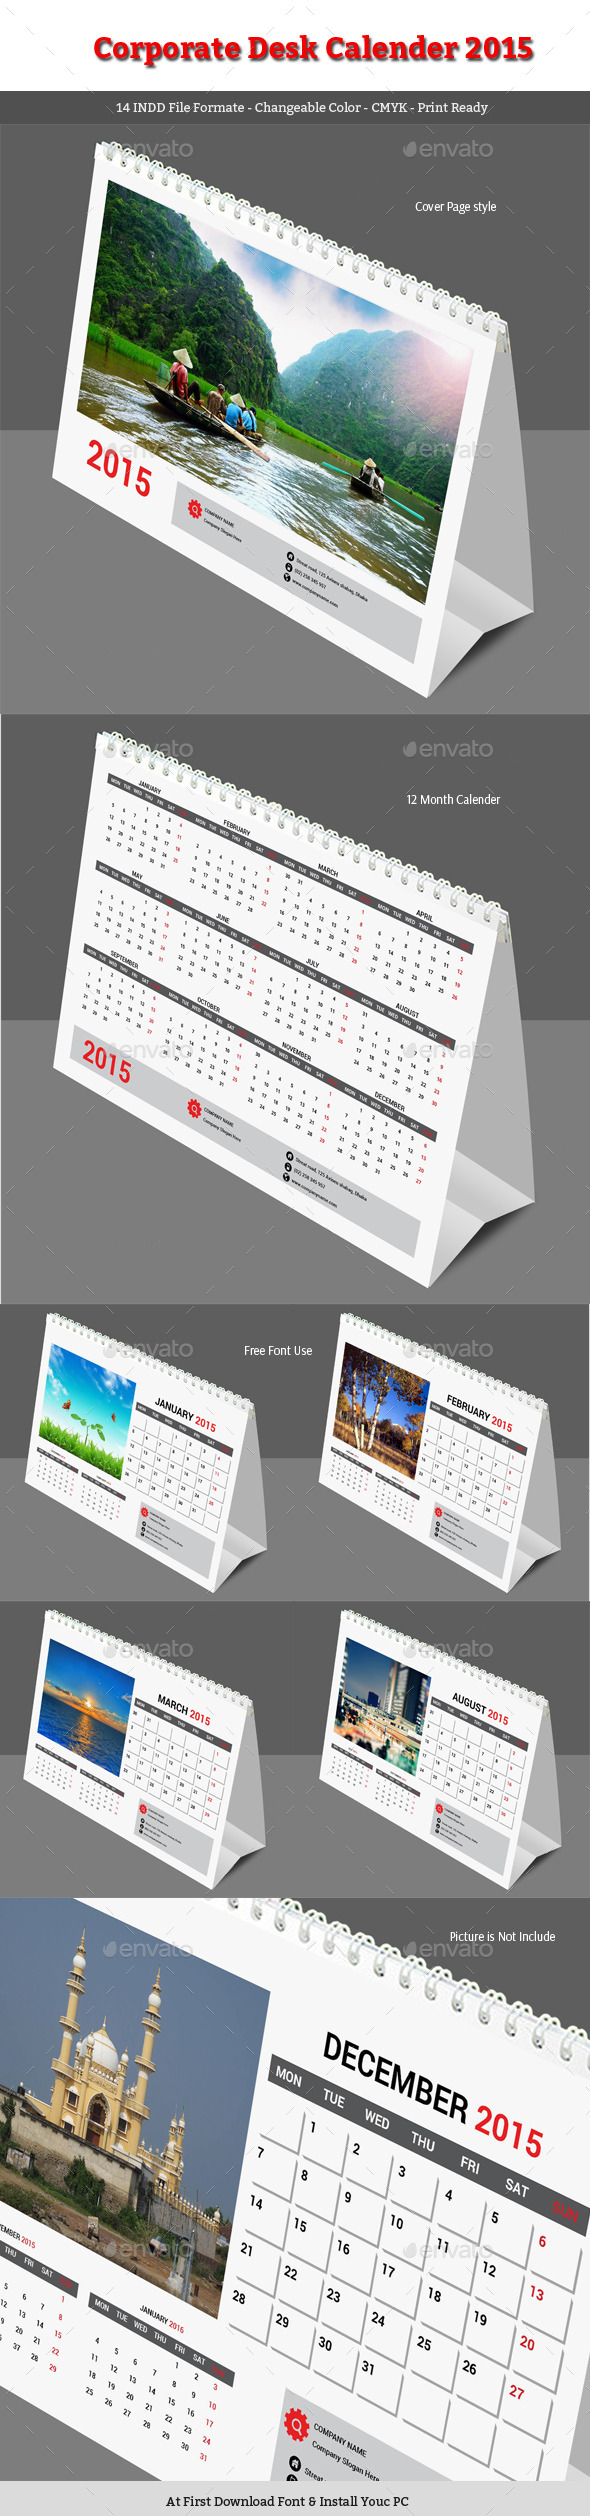 GraphicRiver Corporate Desk Calender 2015 9340301